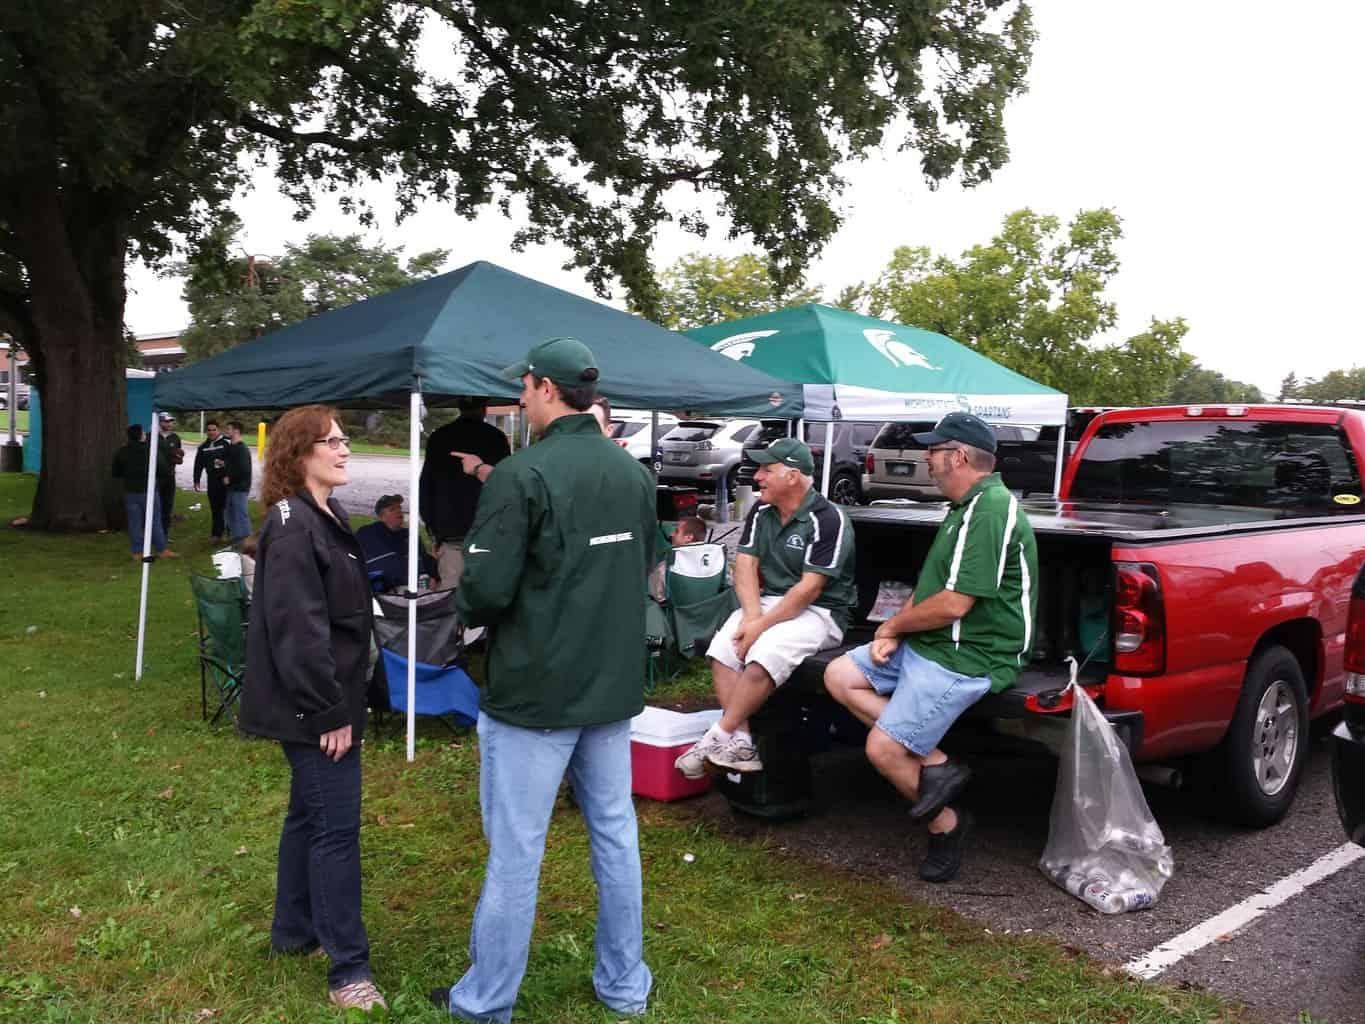 A few canopy tents a portable grill and friends make the perfect tailgate. & Tailgate like a Michigander - Awesome Mitten